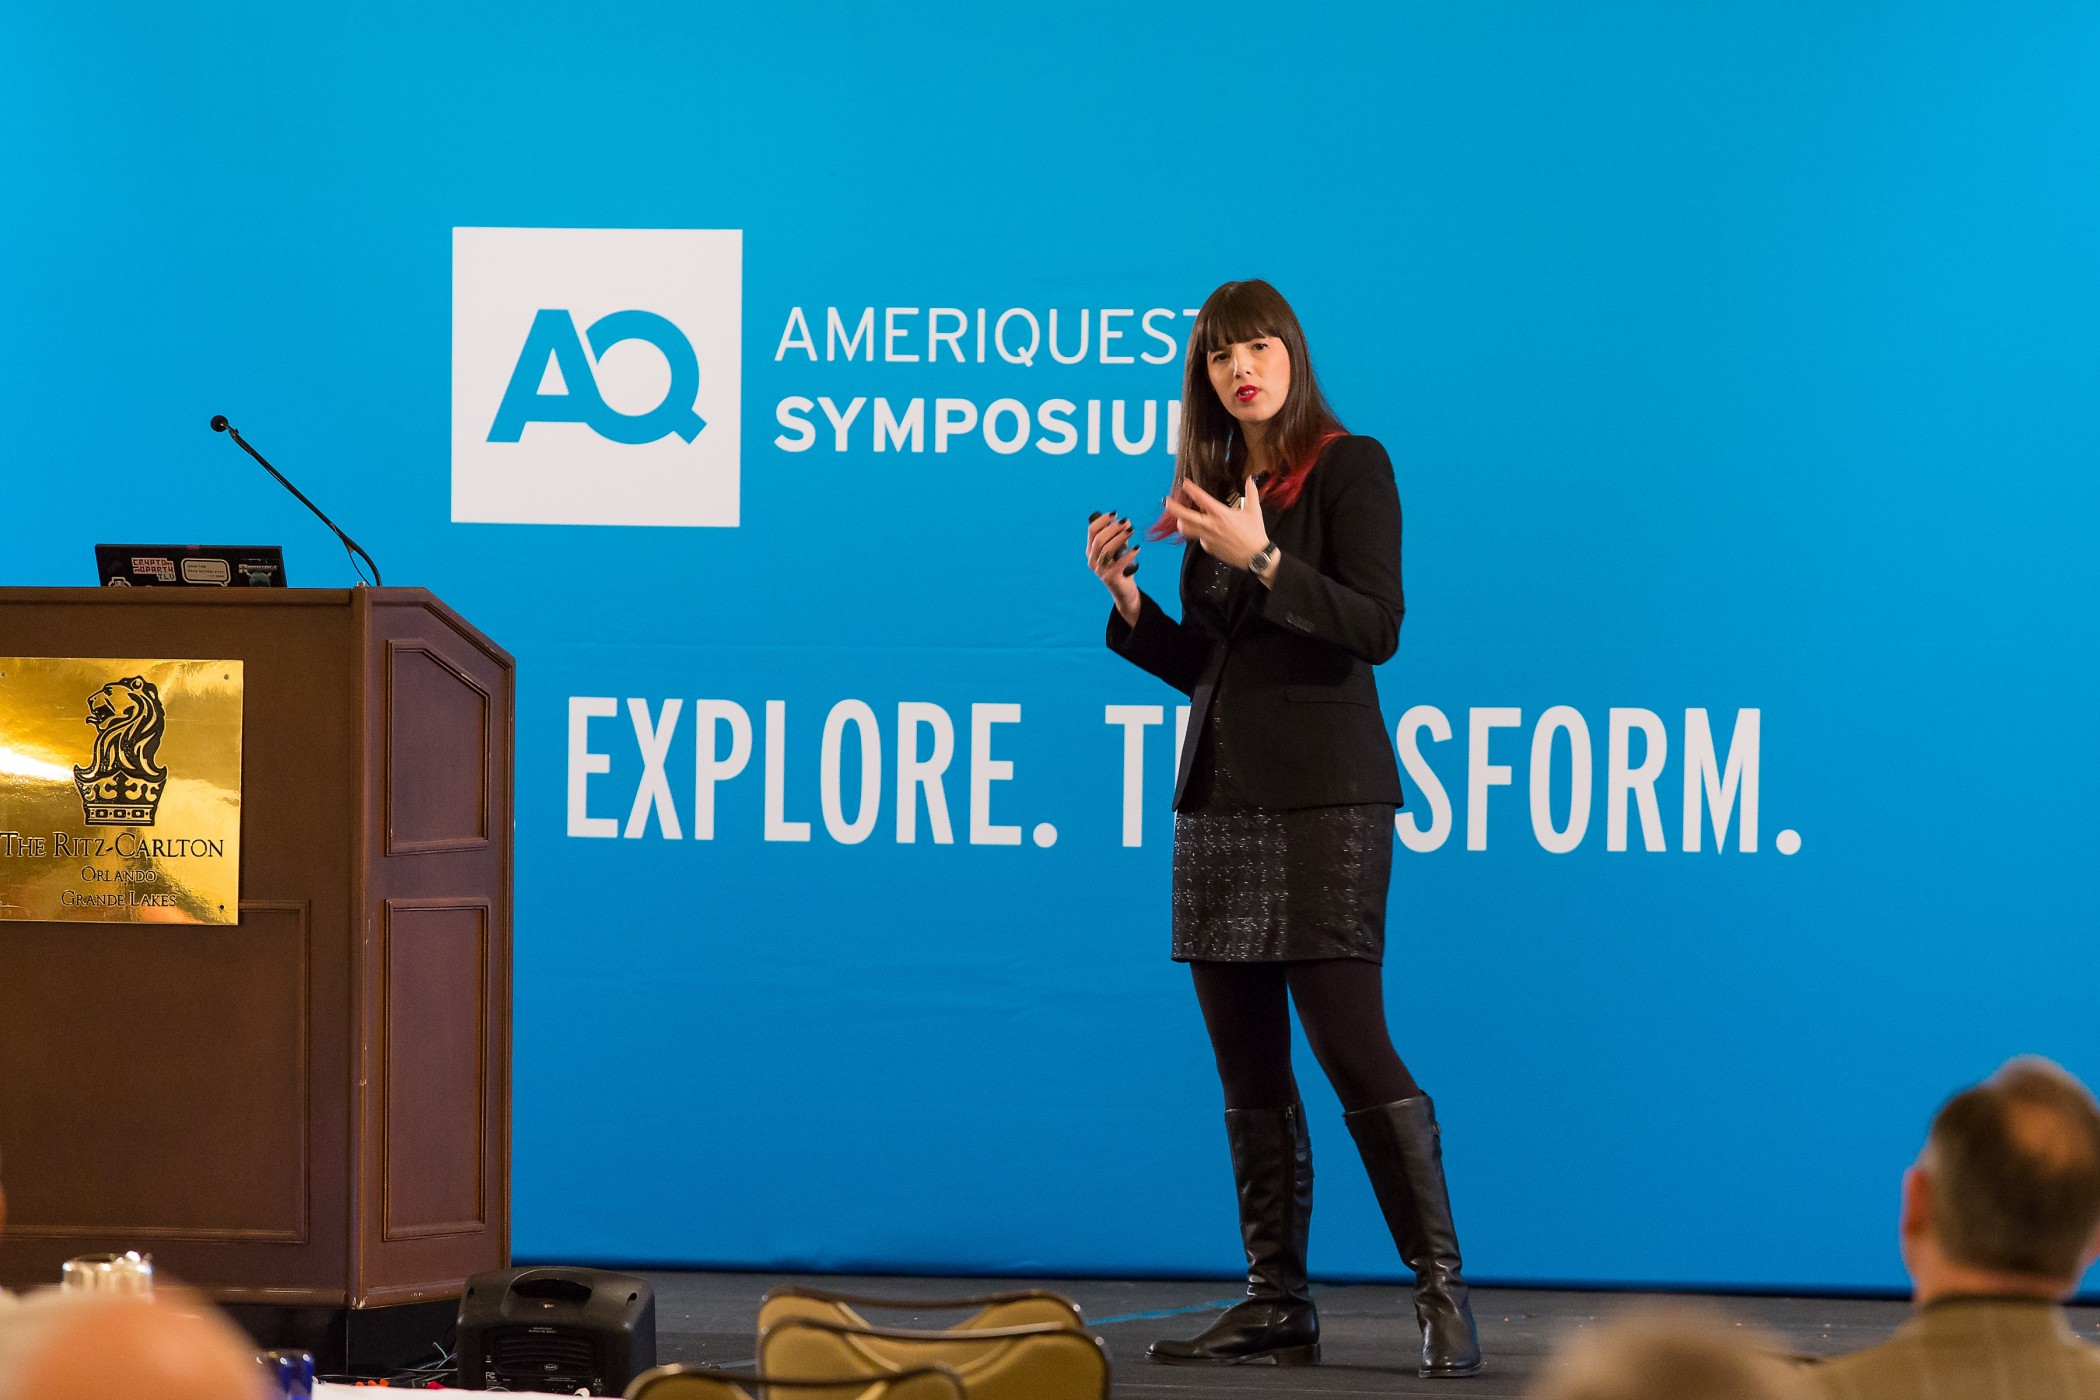 Change Your Thought Processes, Say Speakers at the AmeriQuest Symposium